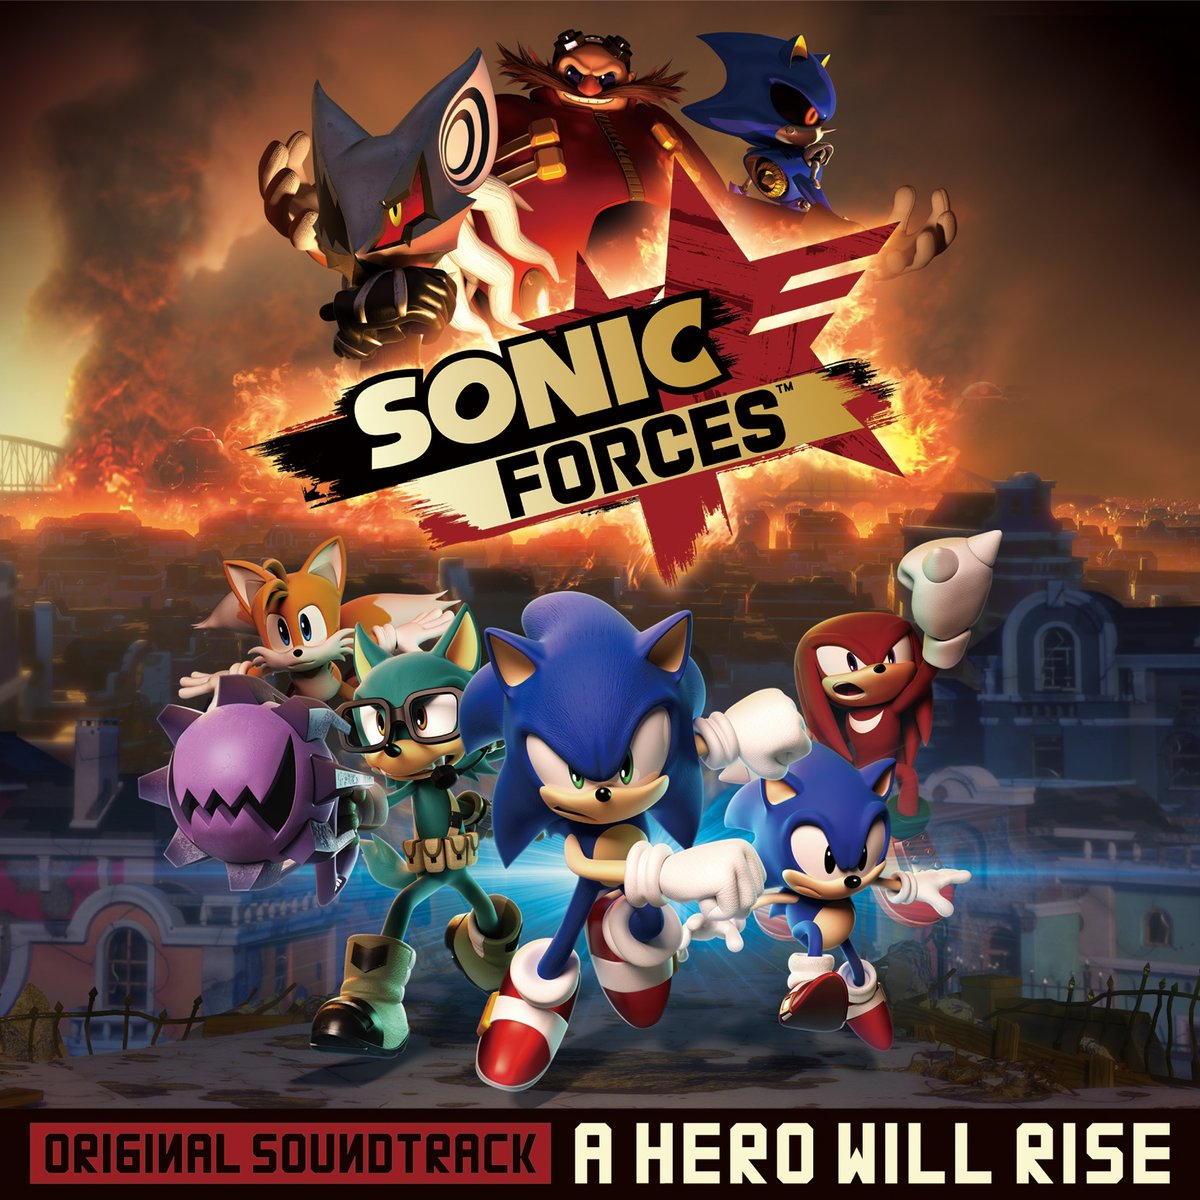 Sonic Forces Original Soundtrack A Hero Will Rise Sonic News Network Fandom